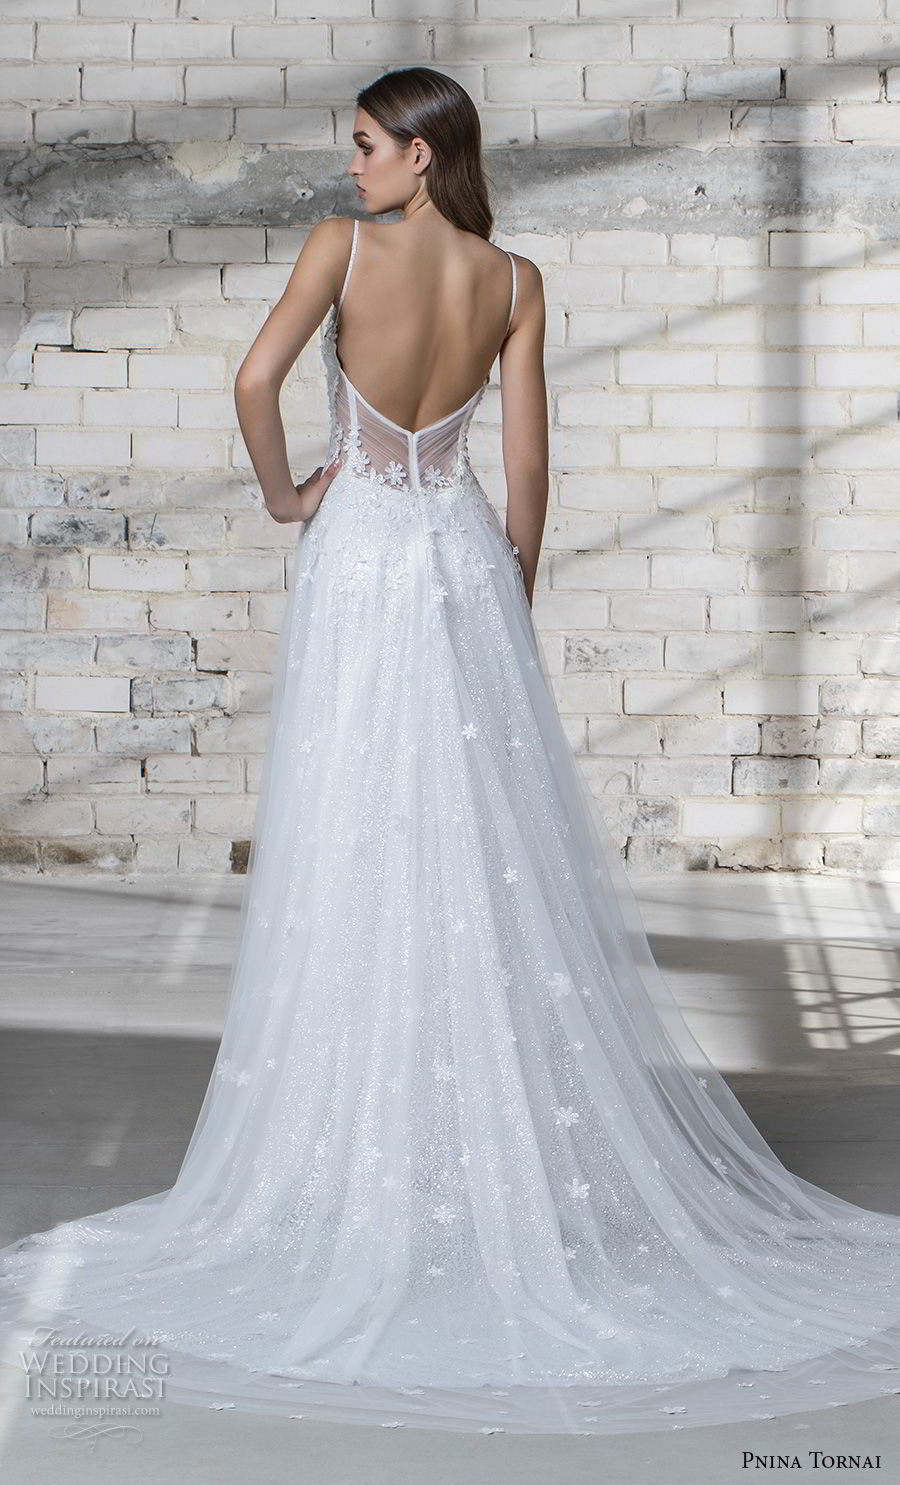 pnina tornai 2019 love bridal spaghetti strap deep sweetheart neckline heavily embellished bodice romantic a line wedding dress open back chapel train (6) bv